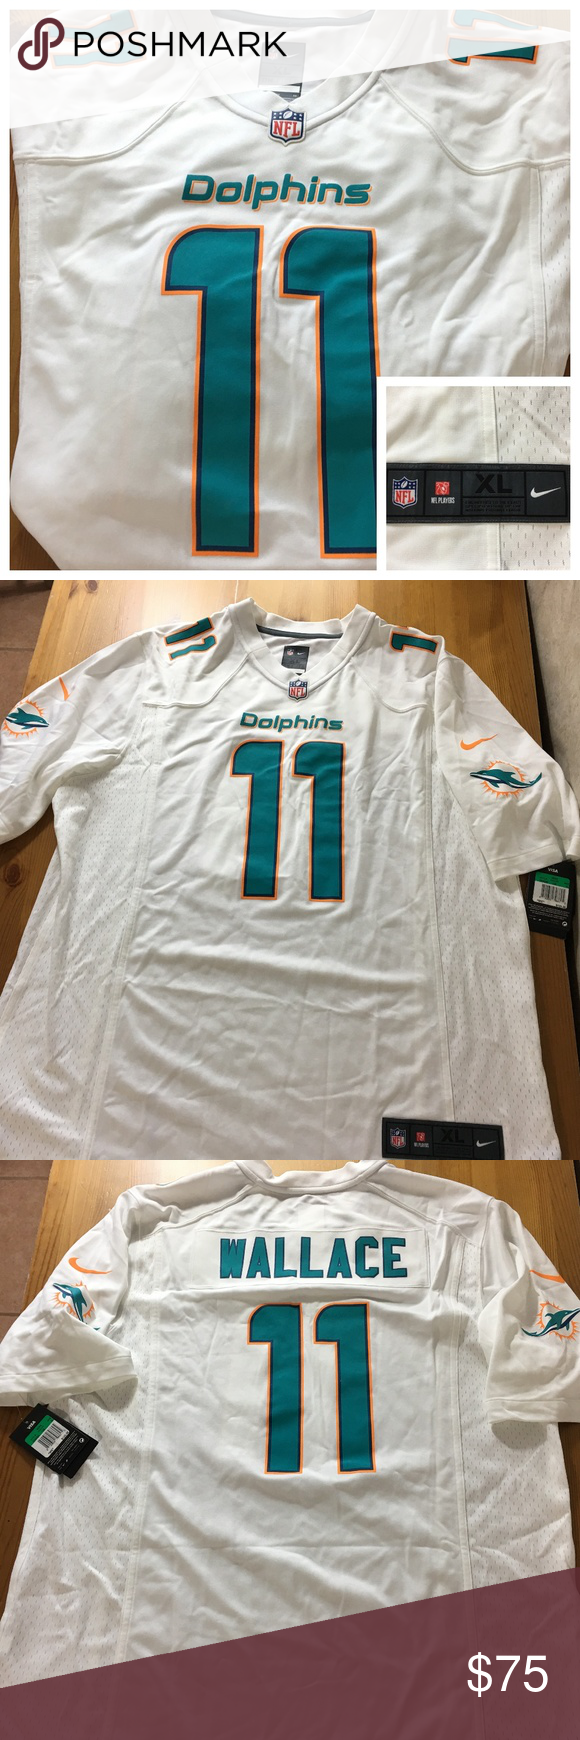 Nike Miami Dolphins NFL  11 Mike Wallace Jersey New with Tags! Miami  Dolphins NFL a2af442a5